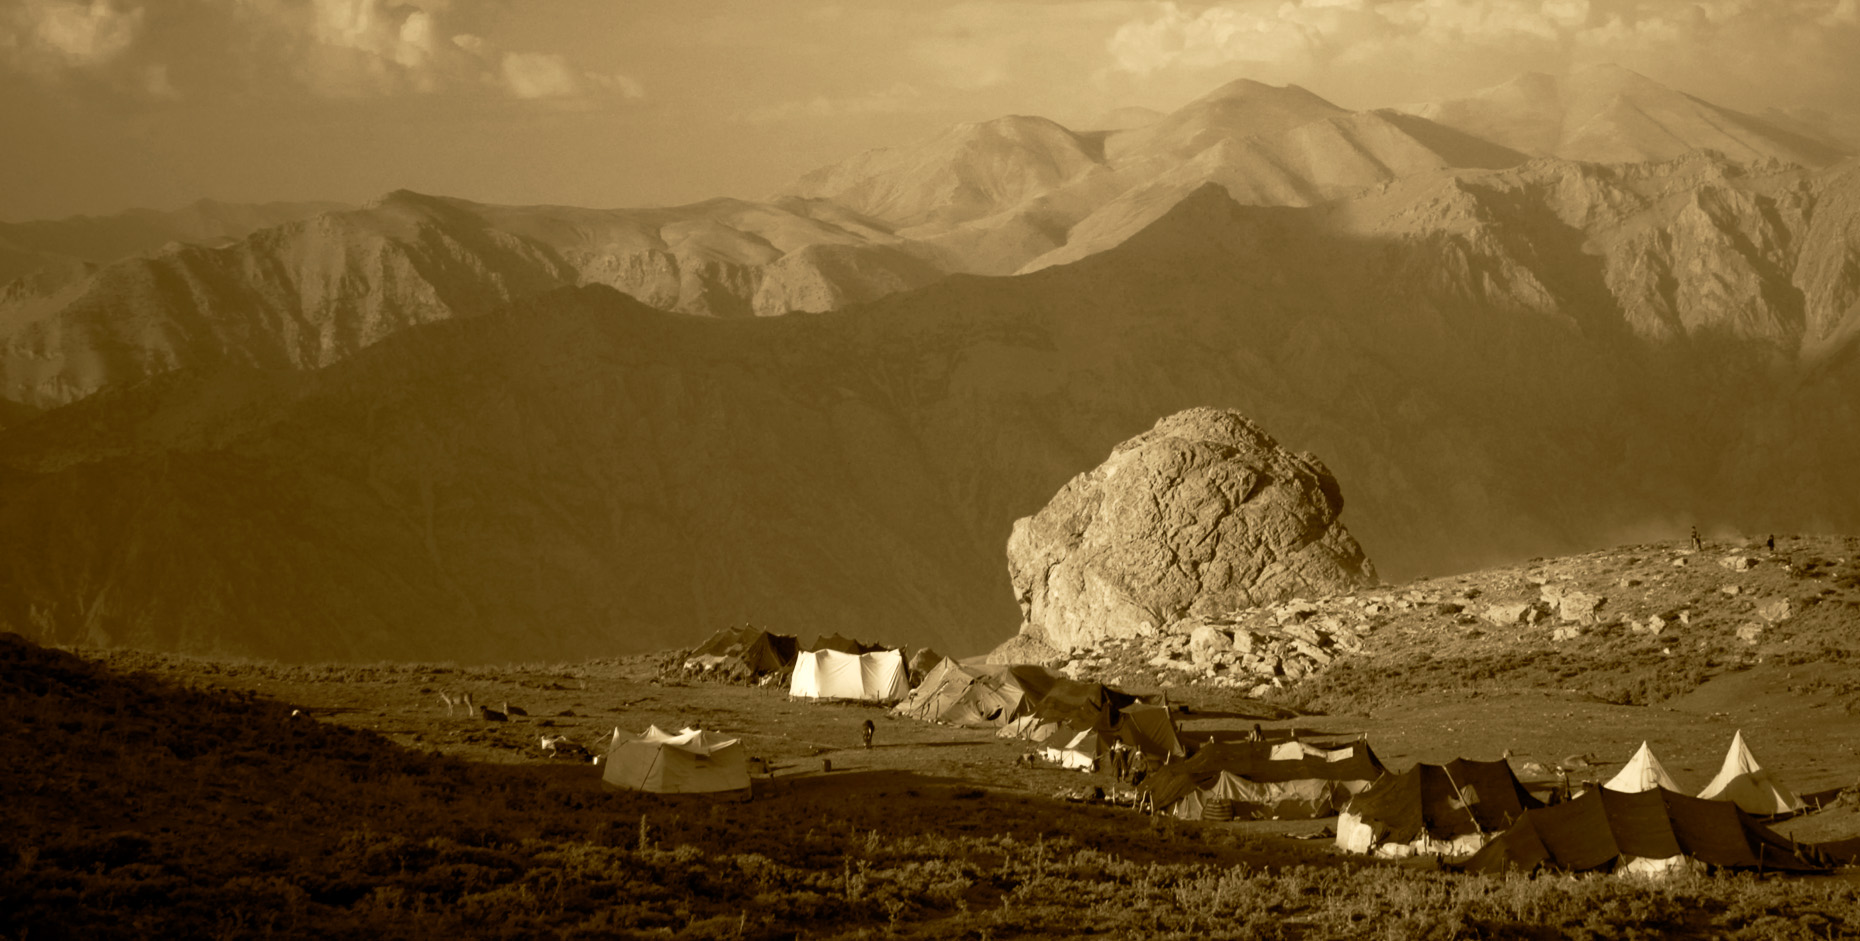 Remote mountain nomadic village, Syrian Border